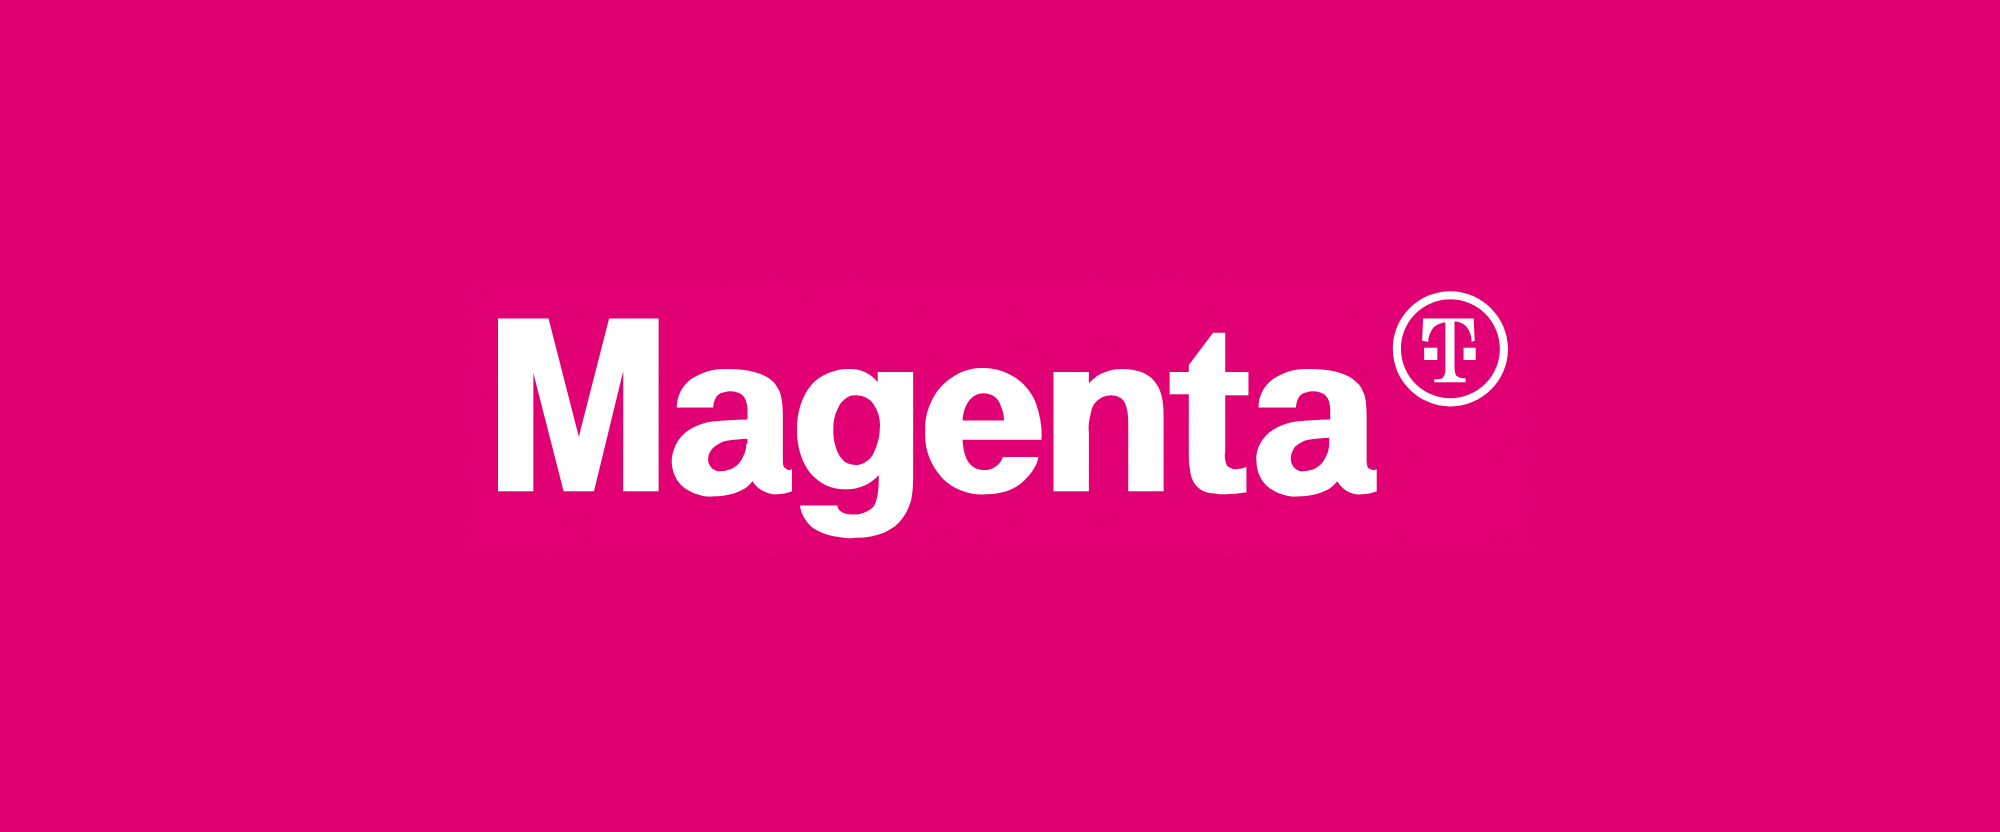 New Name and Logo for Magenta Telekom